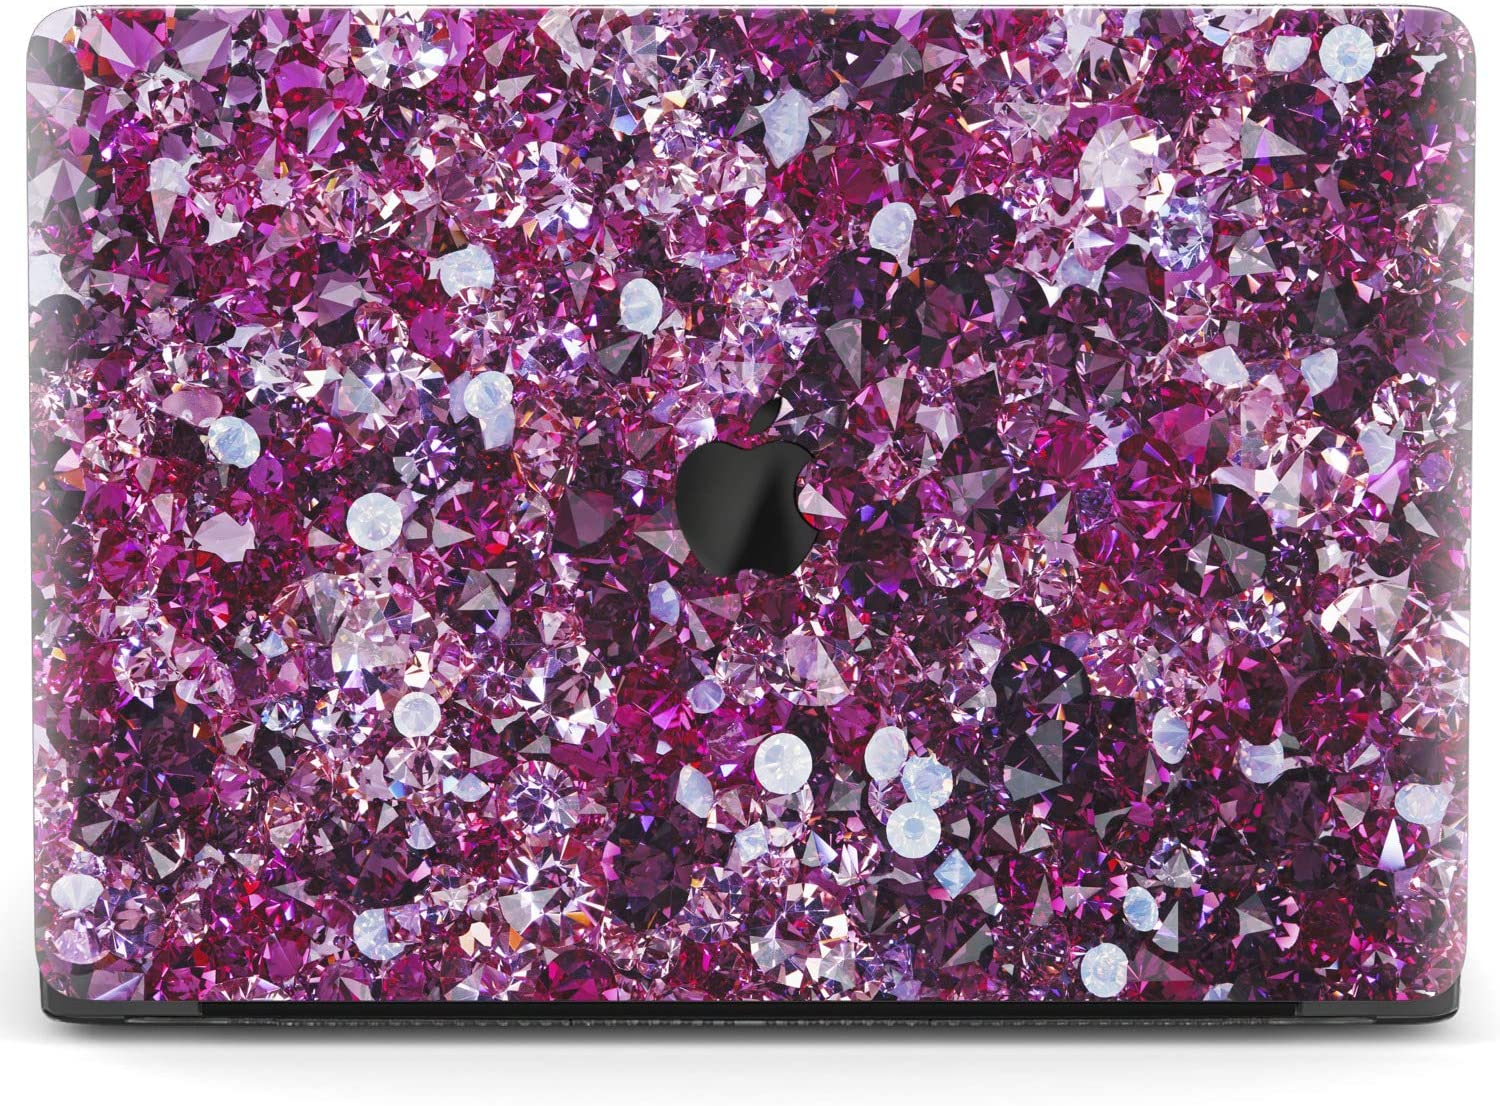 Mertak Hard Case for Apple MacBook Pro 16 Air 13 inch Mac 15 Retina 12 11 2020 2019 2018 2017 Jewelry Crystal Protective Touch Bar Texture Laptop Clear Cover Gemstones Amethyst Purple Design Print